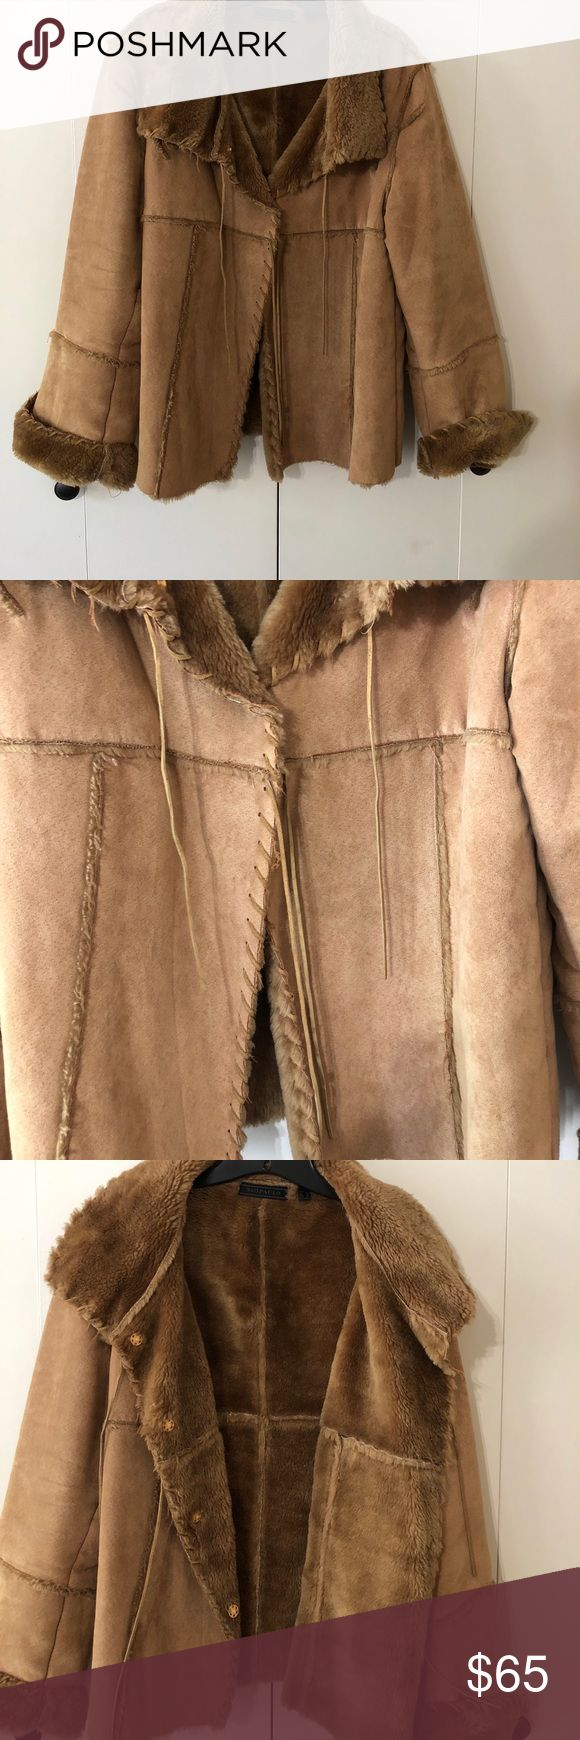 Warm Winter Coat São Paulo Suede Jacket Faux Fur❤️Looks great with jeans and is very warm! Jackets & Coats